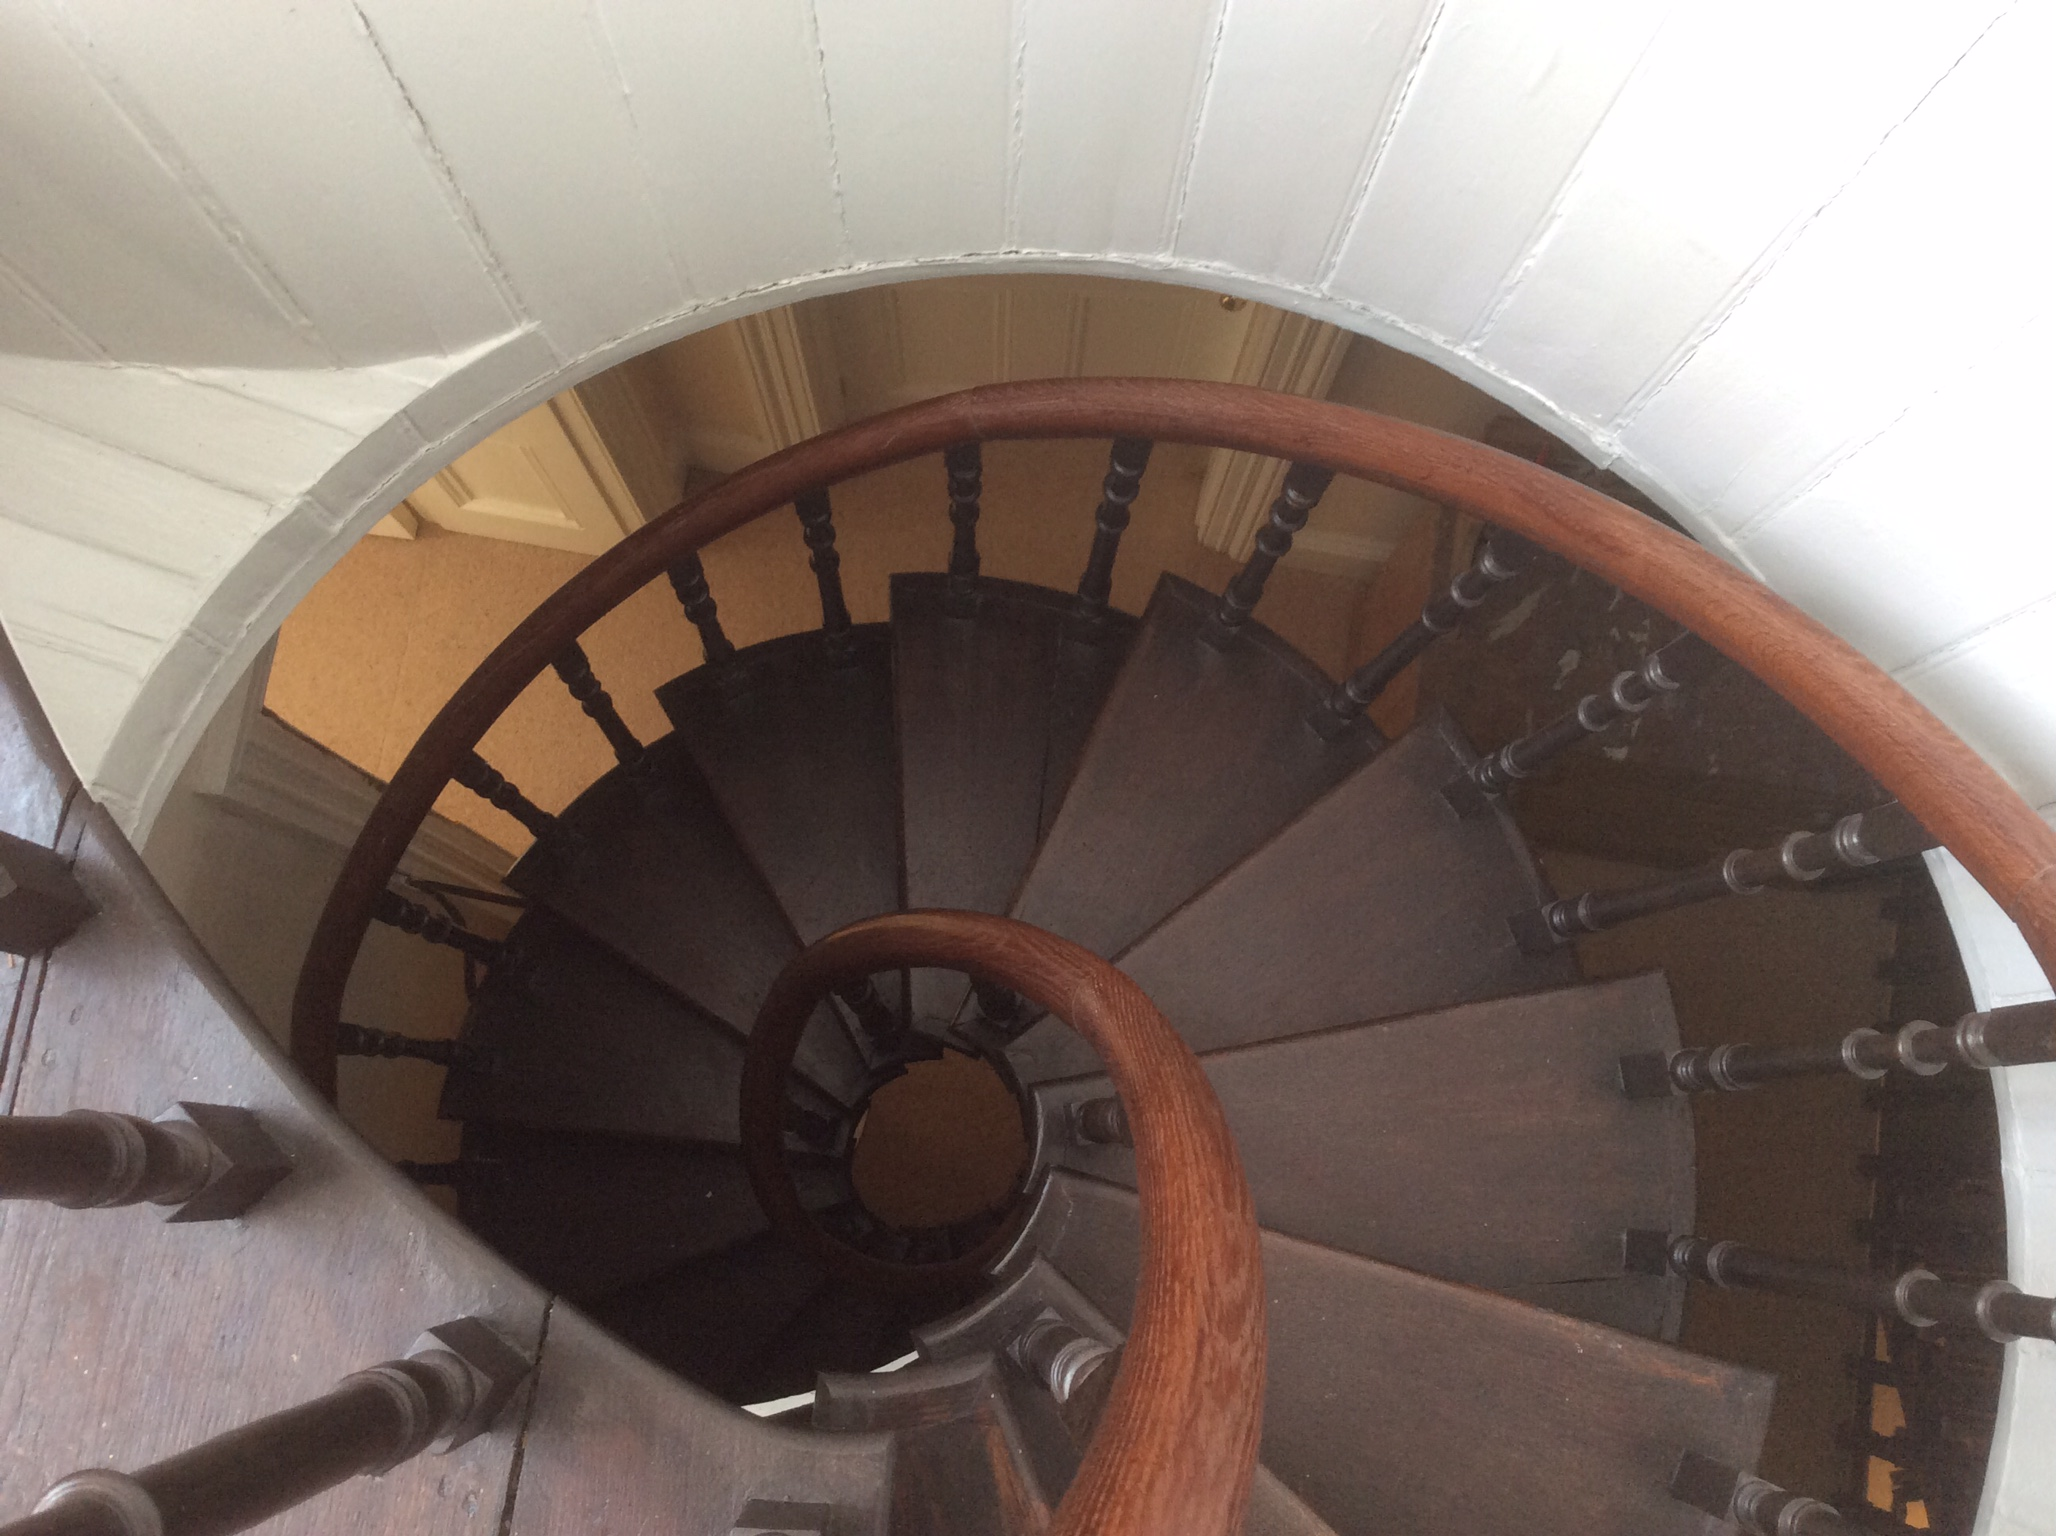 Spiral staircase to the turret